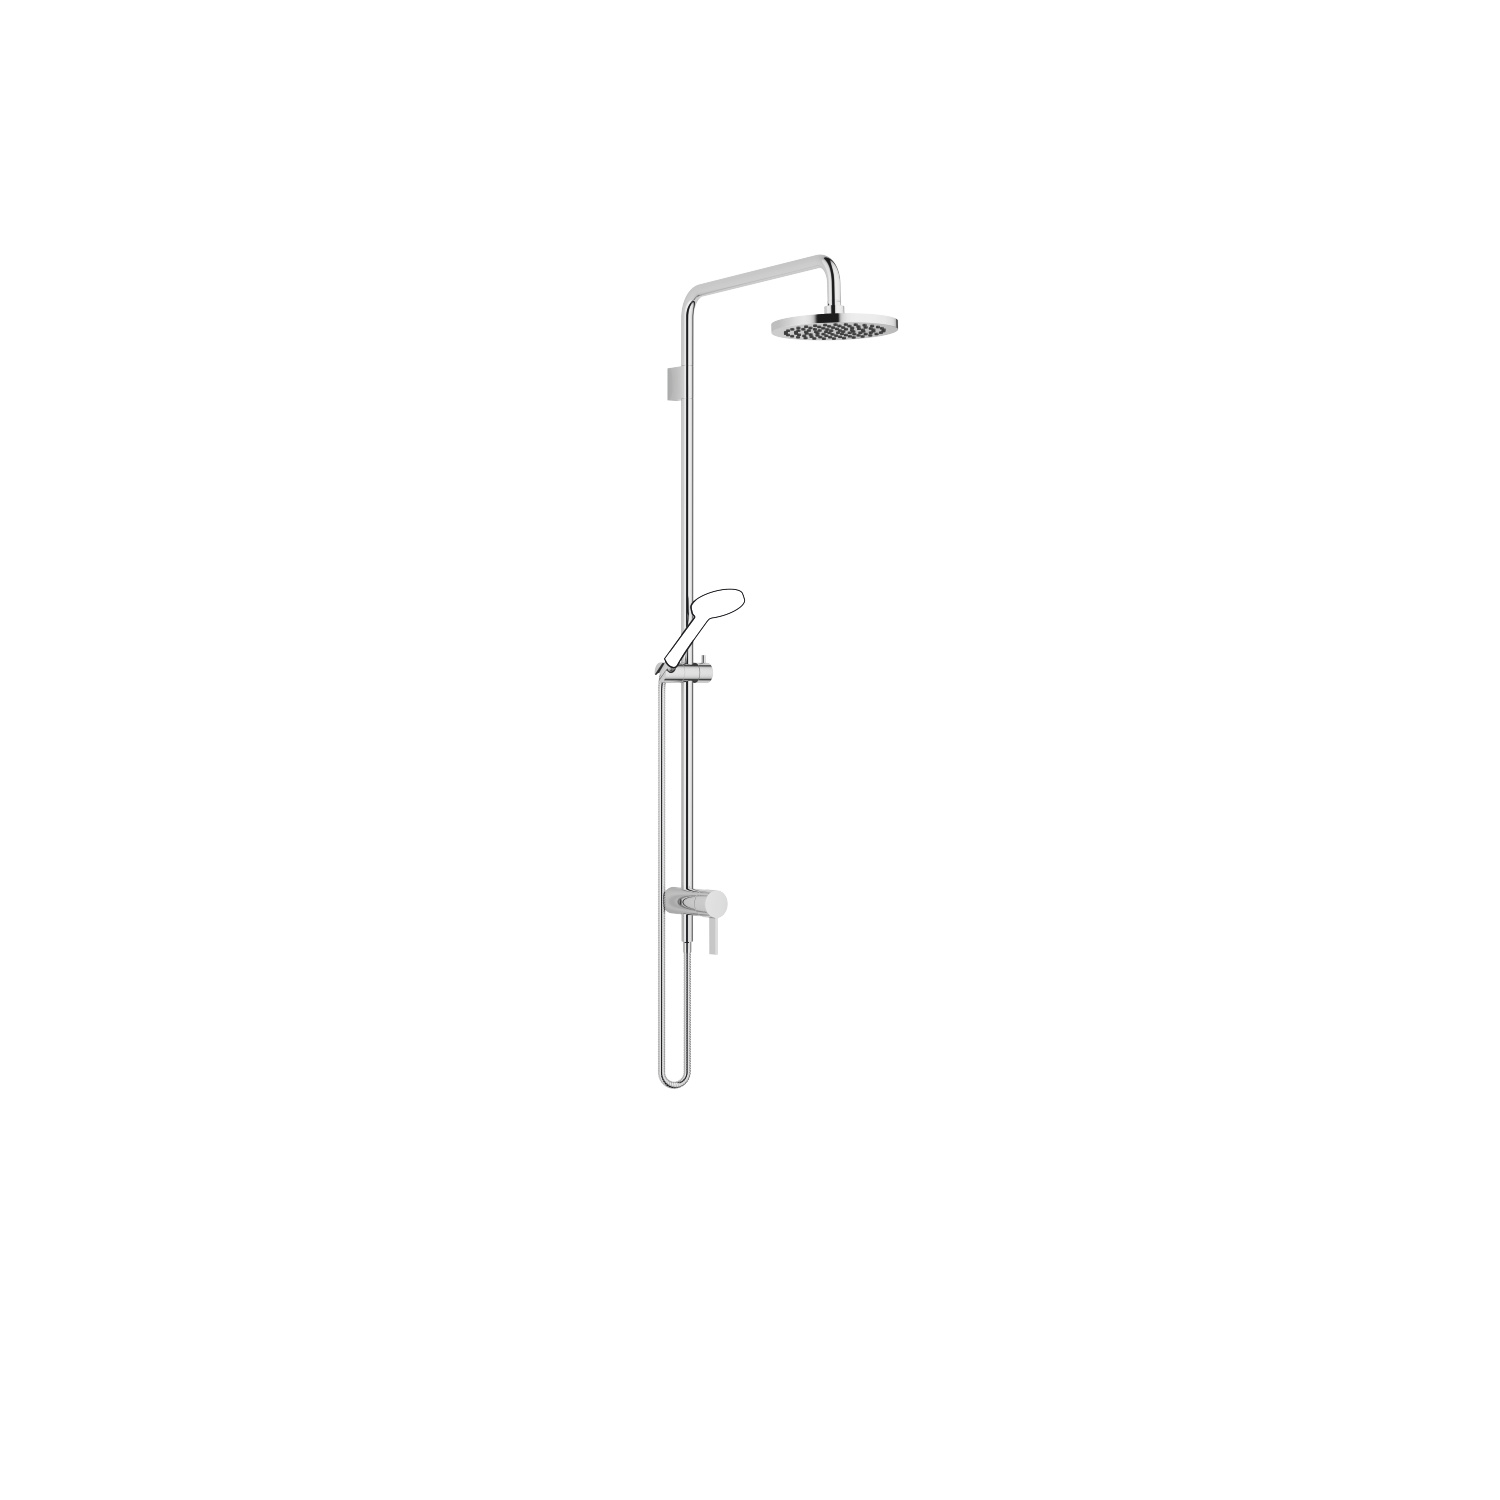 Showerpipe with single-lever shower mixer - polished chrome